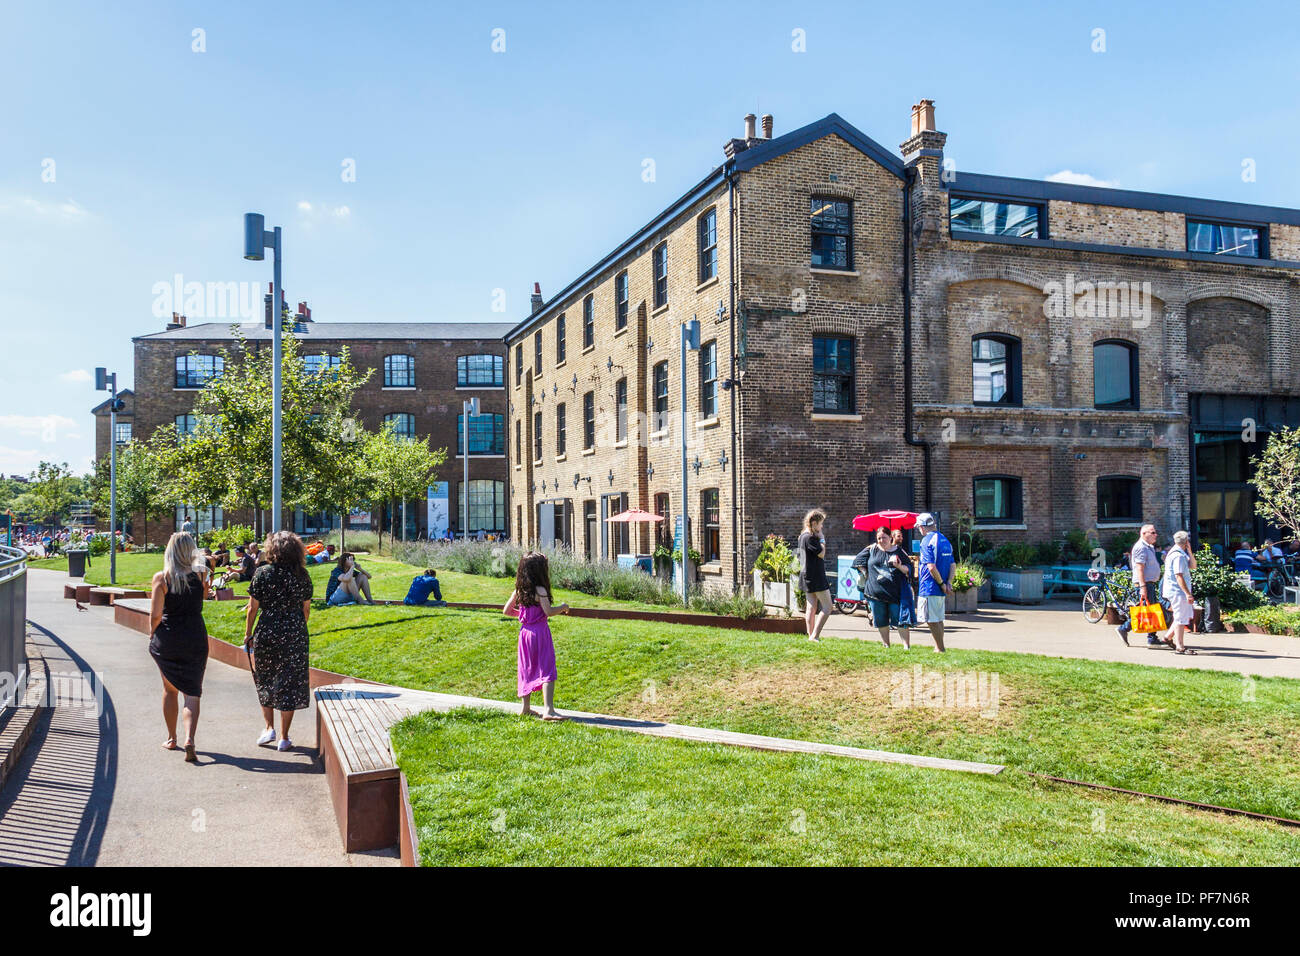 Recently renovated buildings at Goods Way and Granary Square, King's Cross, London, UK, 2018 - Stock Image